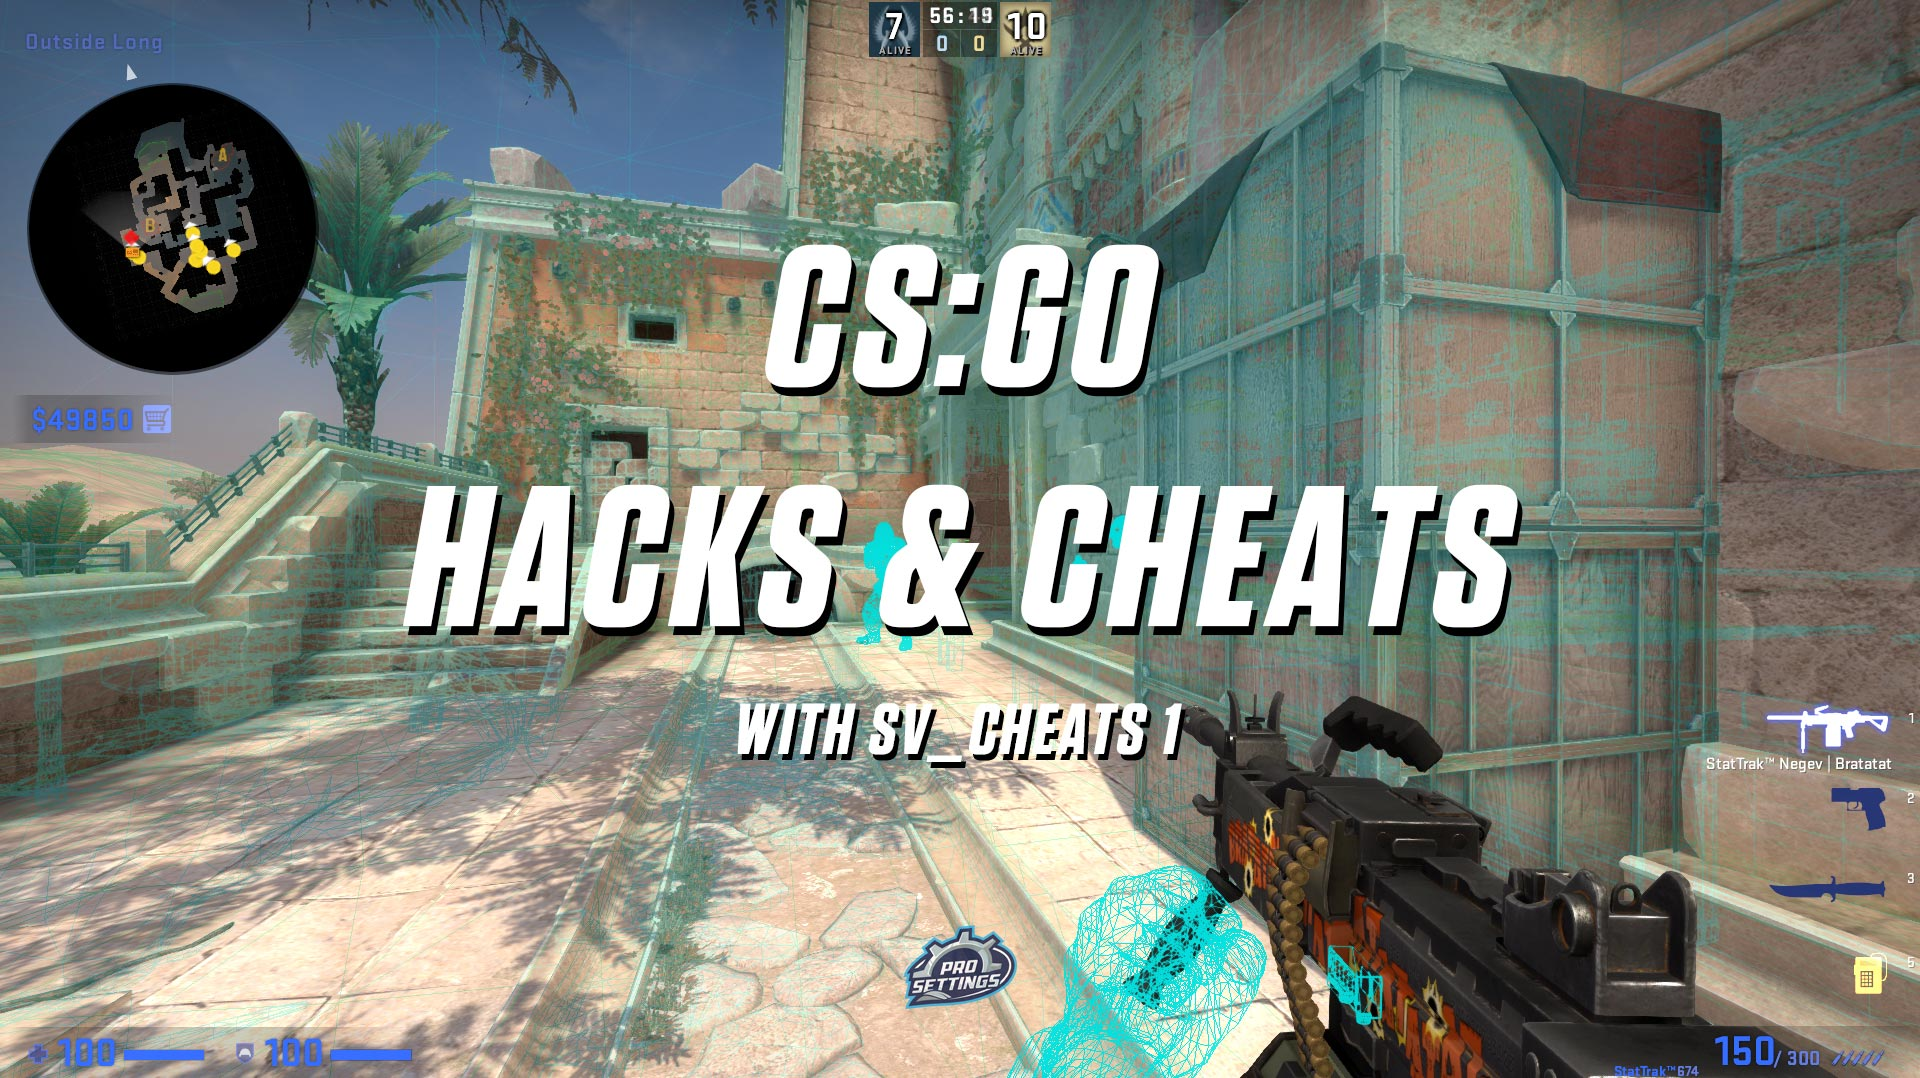 CS:GO Hacks & Cheats with sv_cheats 1 [wallhack + aimbot] - Download CS:GO Hacks & Cheats with sv_cheats 1 for FREE - Free Cheats for Games